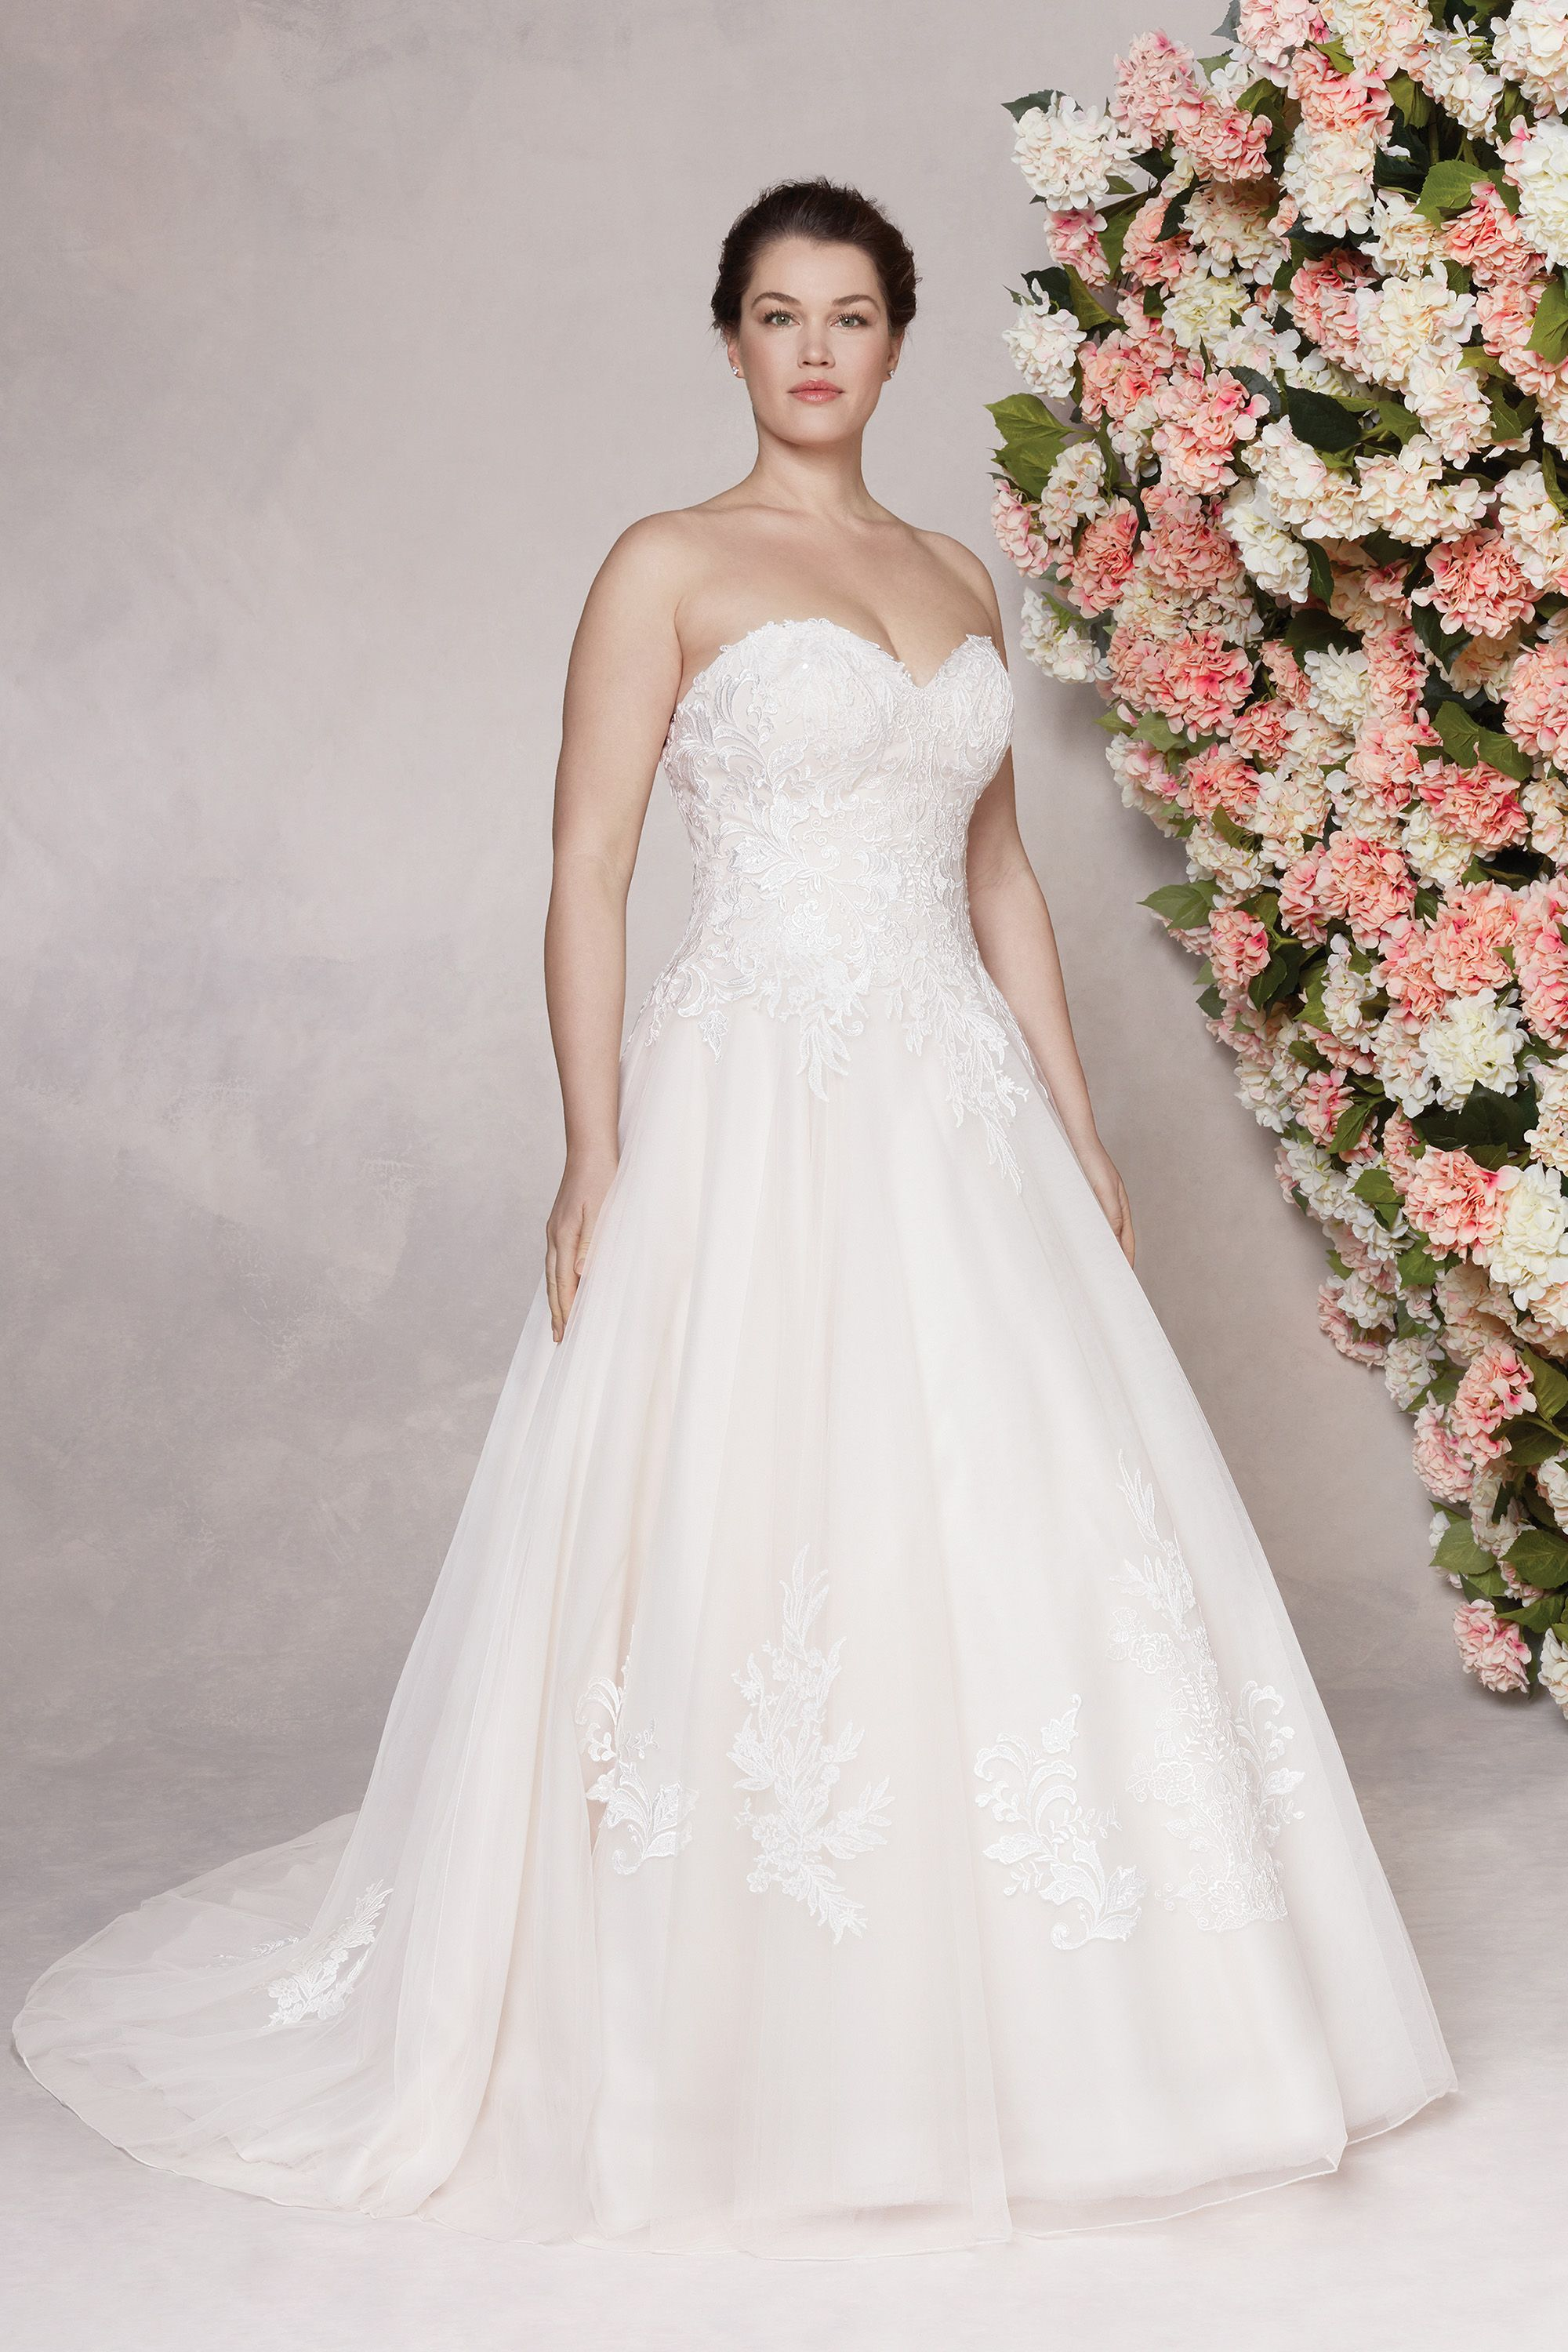 Style 44141 Sweetheart ALine Tulle Gown with Detachable